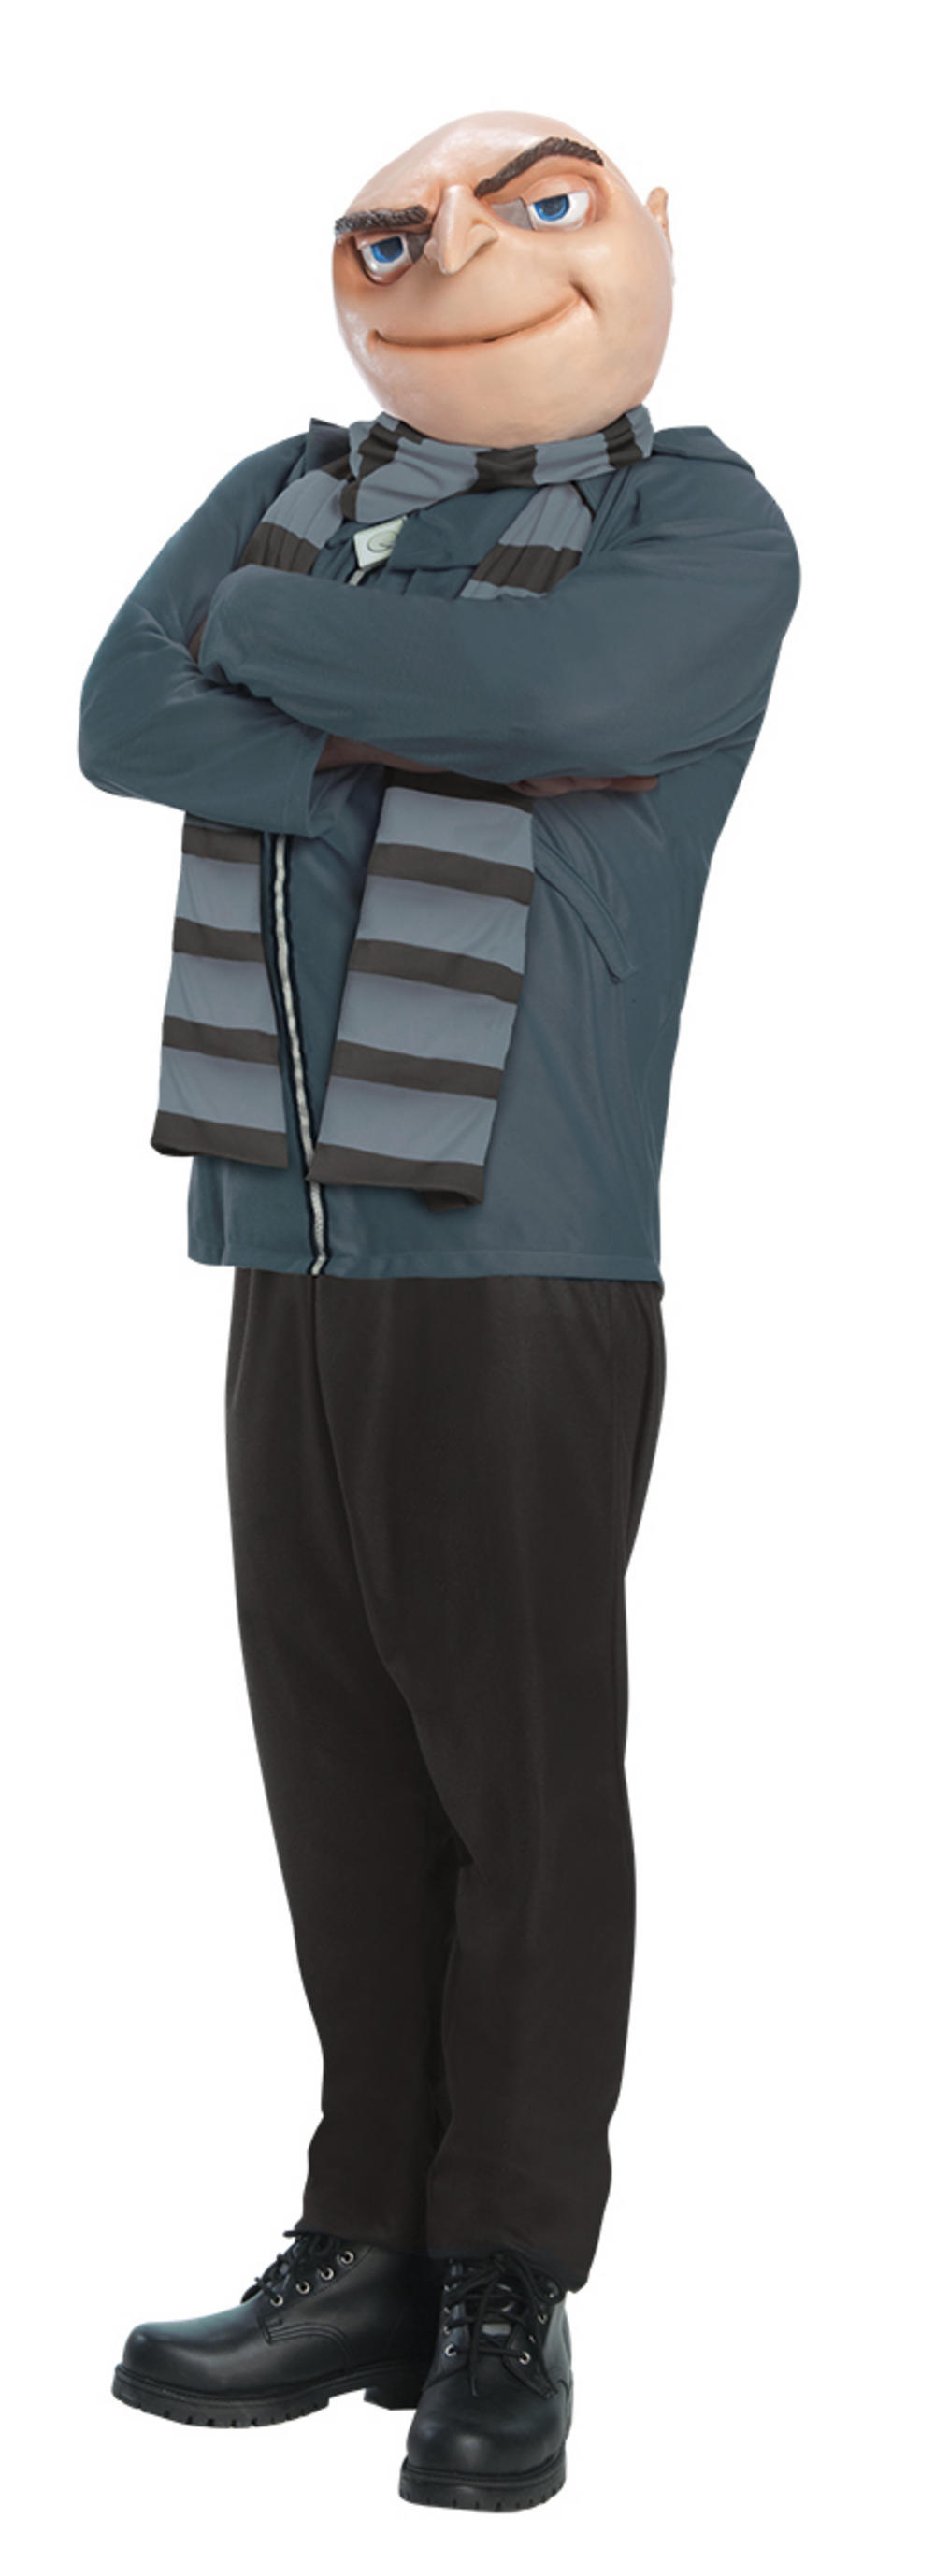 Despicable Me Gru Costume